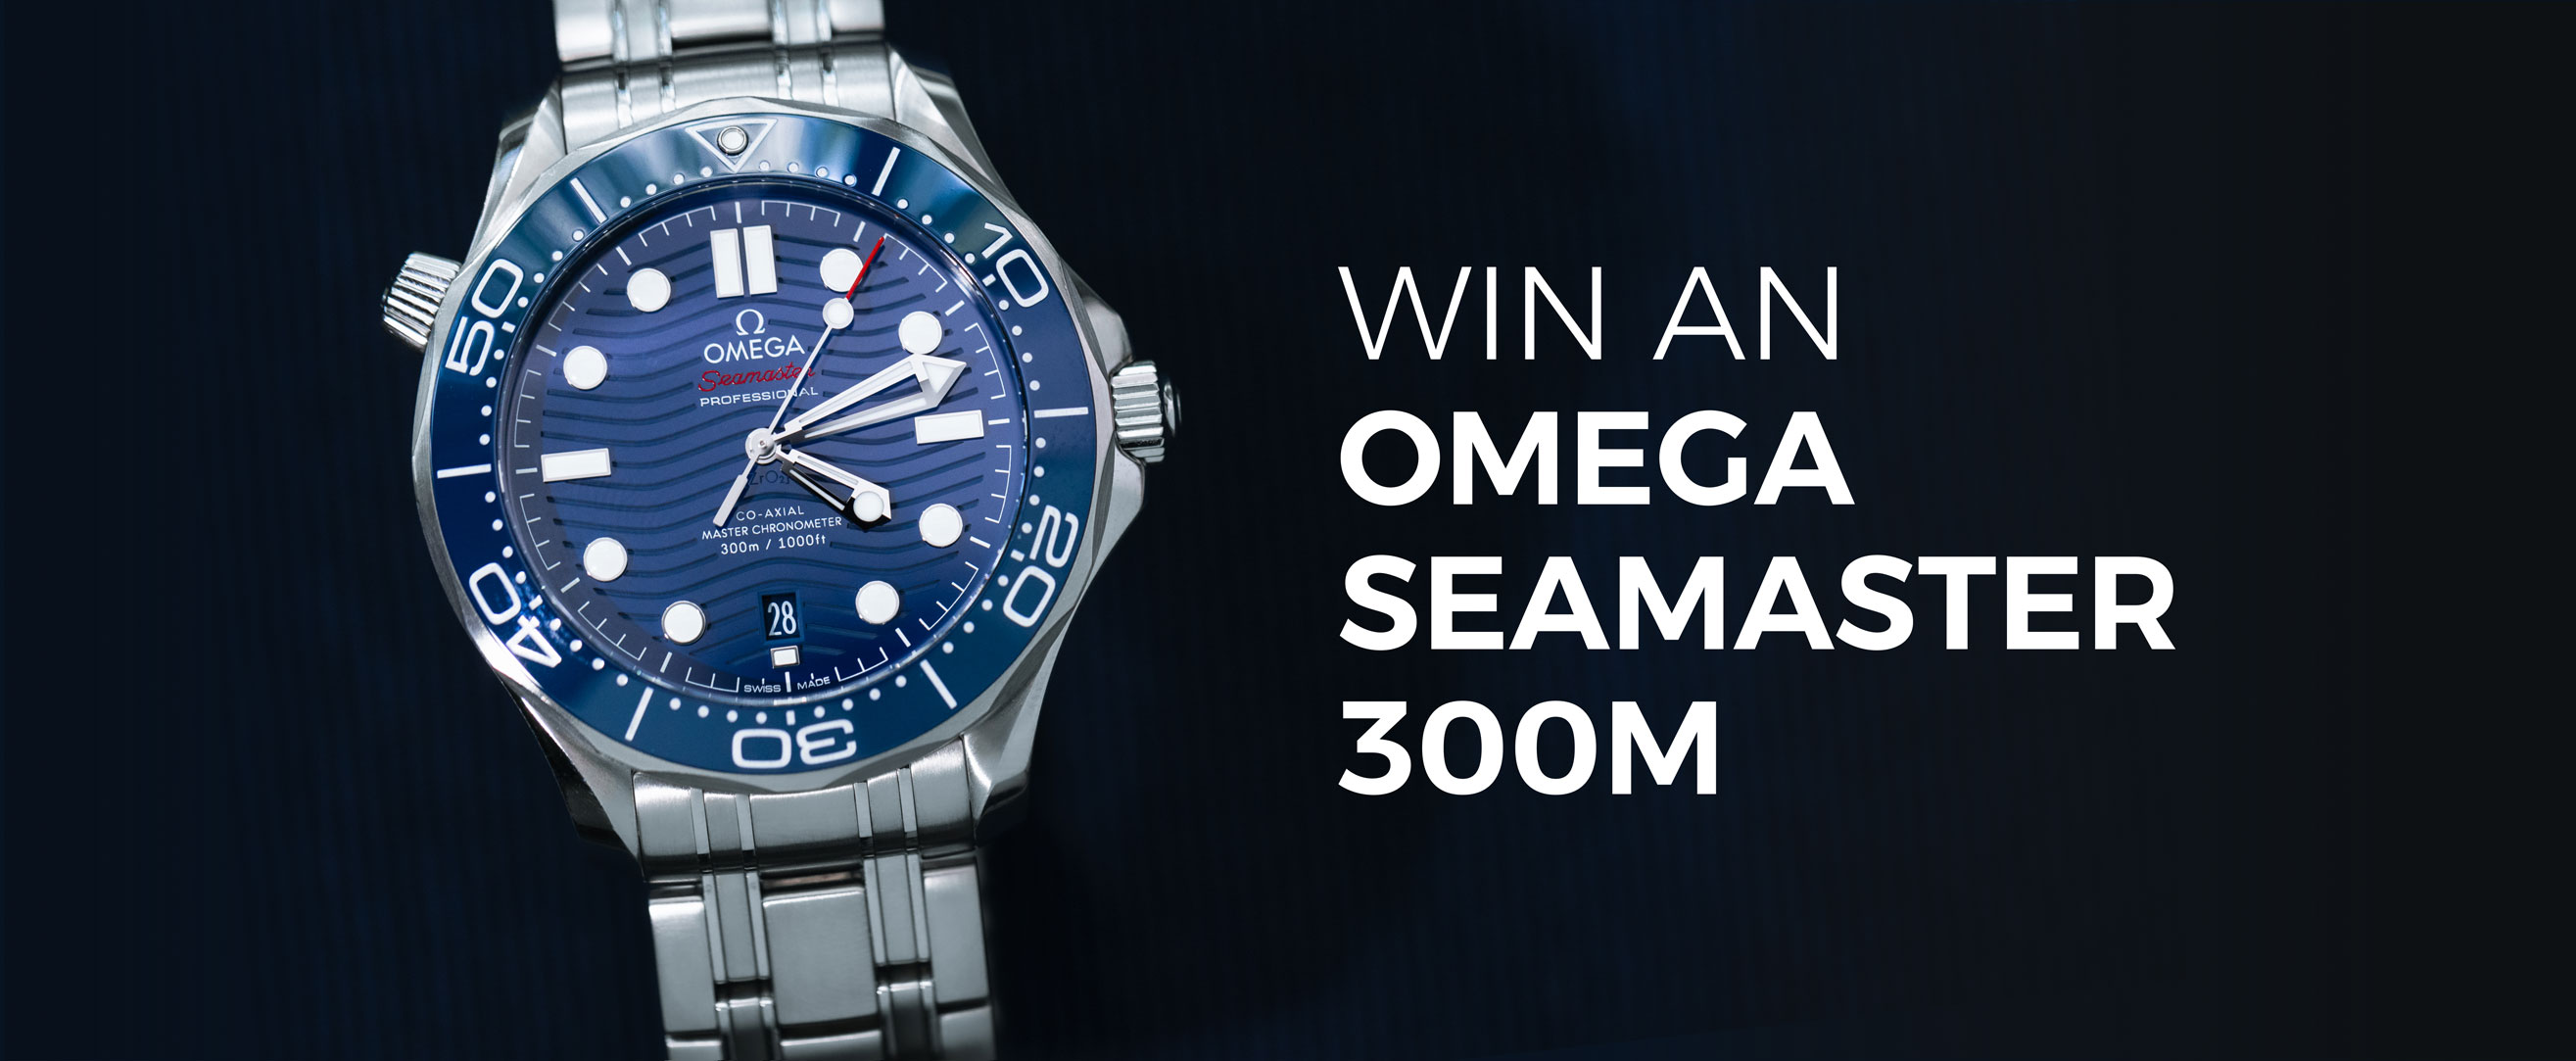 Enter Now for Your Chance to Win an OMEGA Seamaster 300M